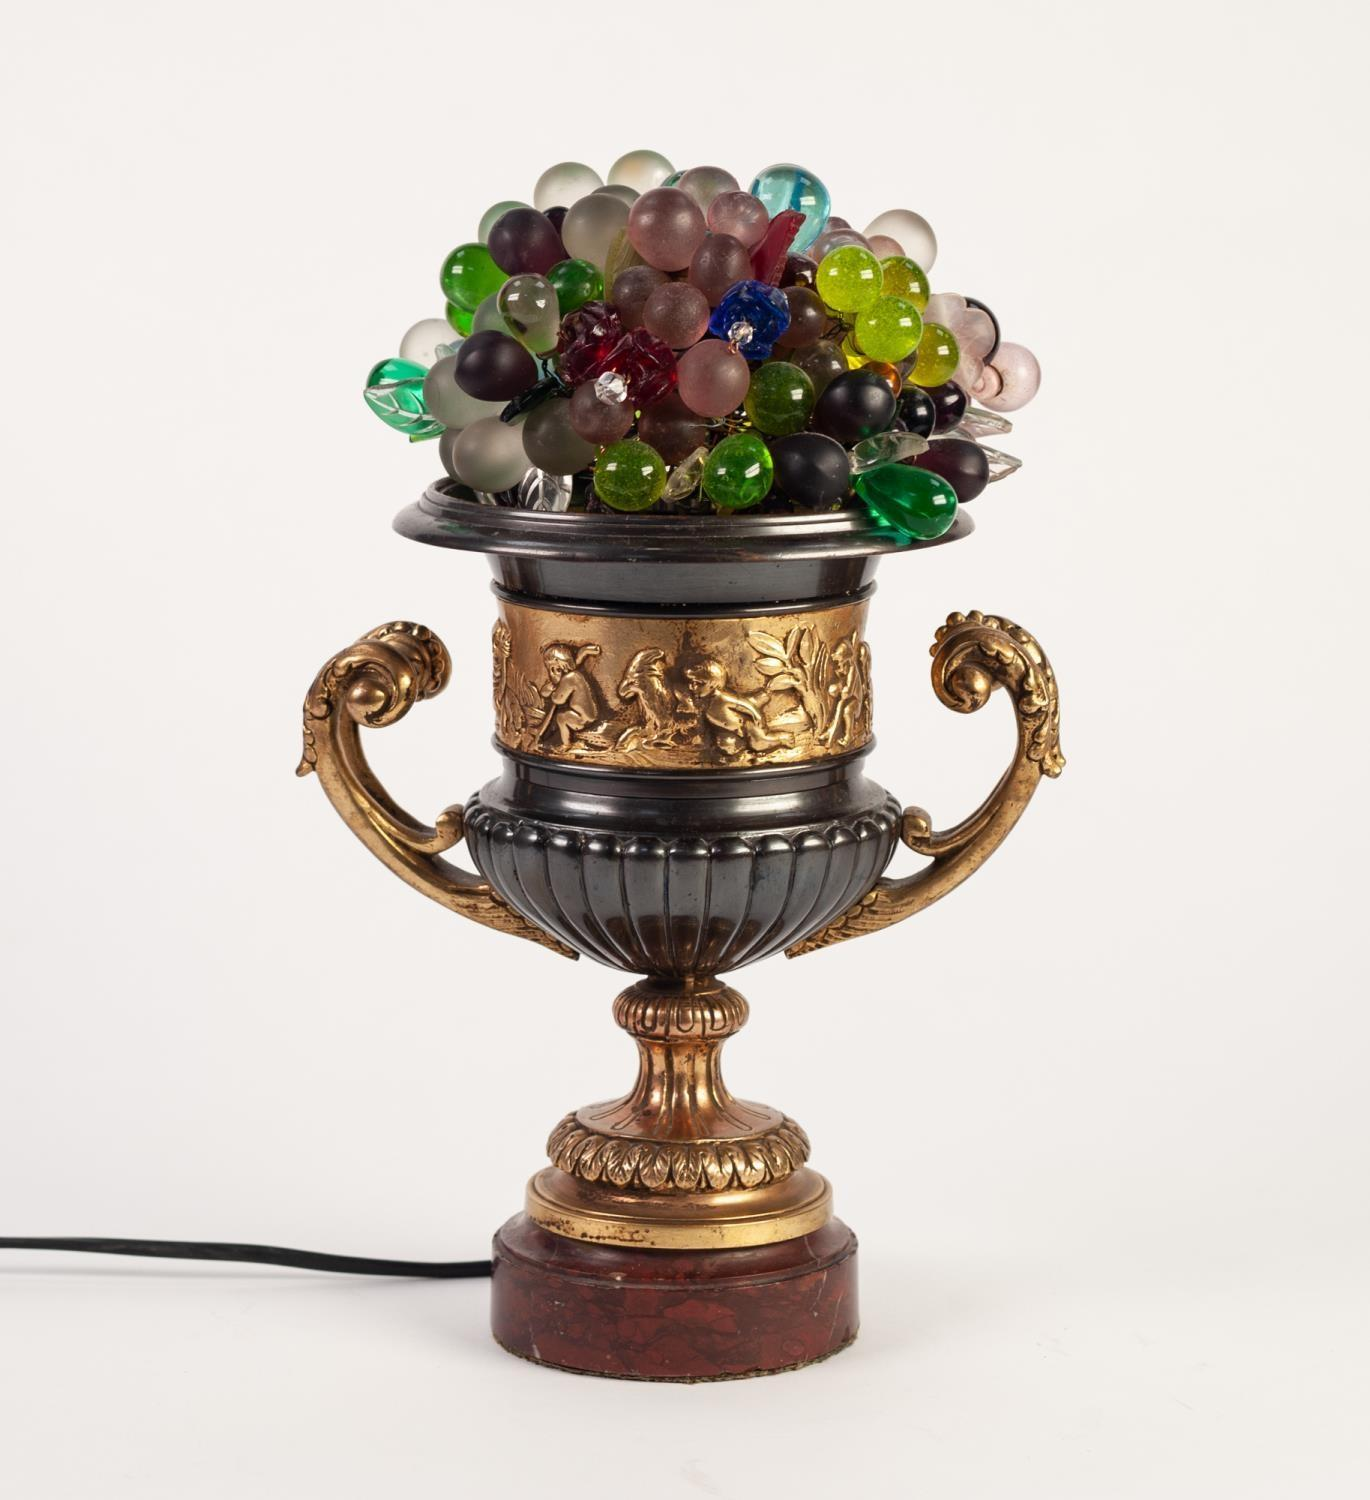 Lot 804 - 20th CENTURY CONTINENTAL 'BRONZED' AND GILDED METAL CAMPANA SHAPE TWO HANDLED VASE, as an electric